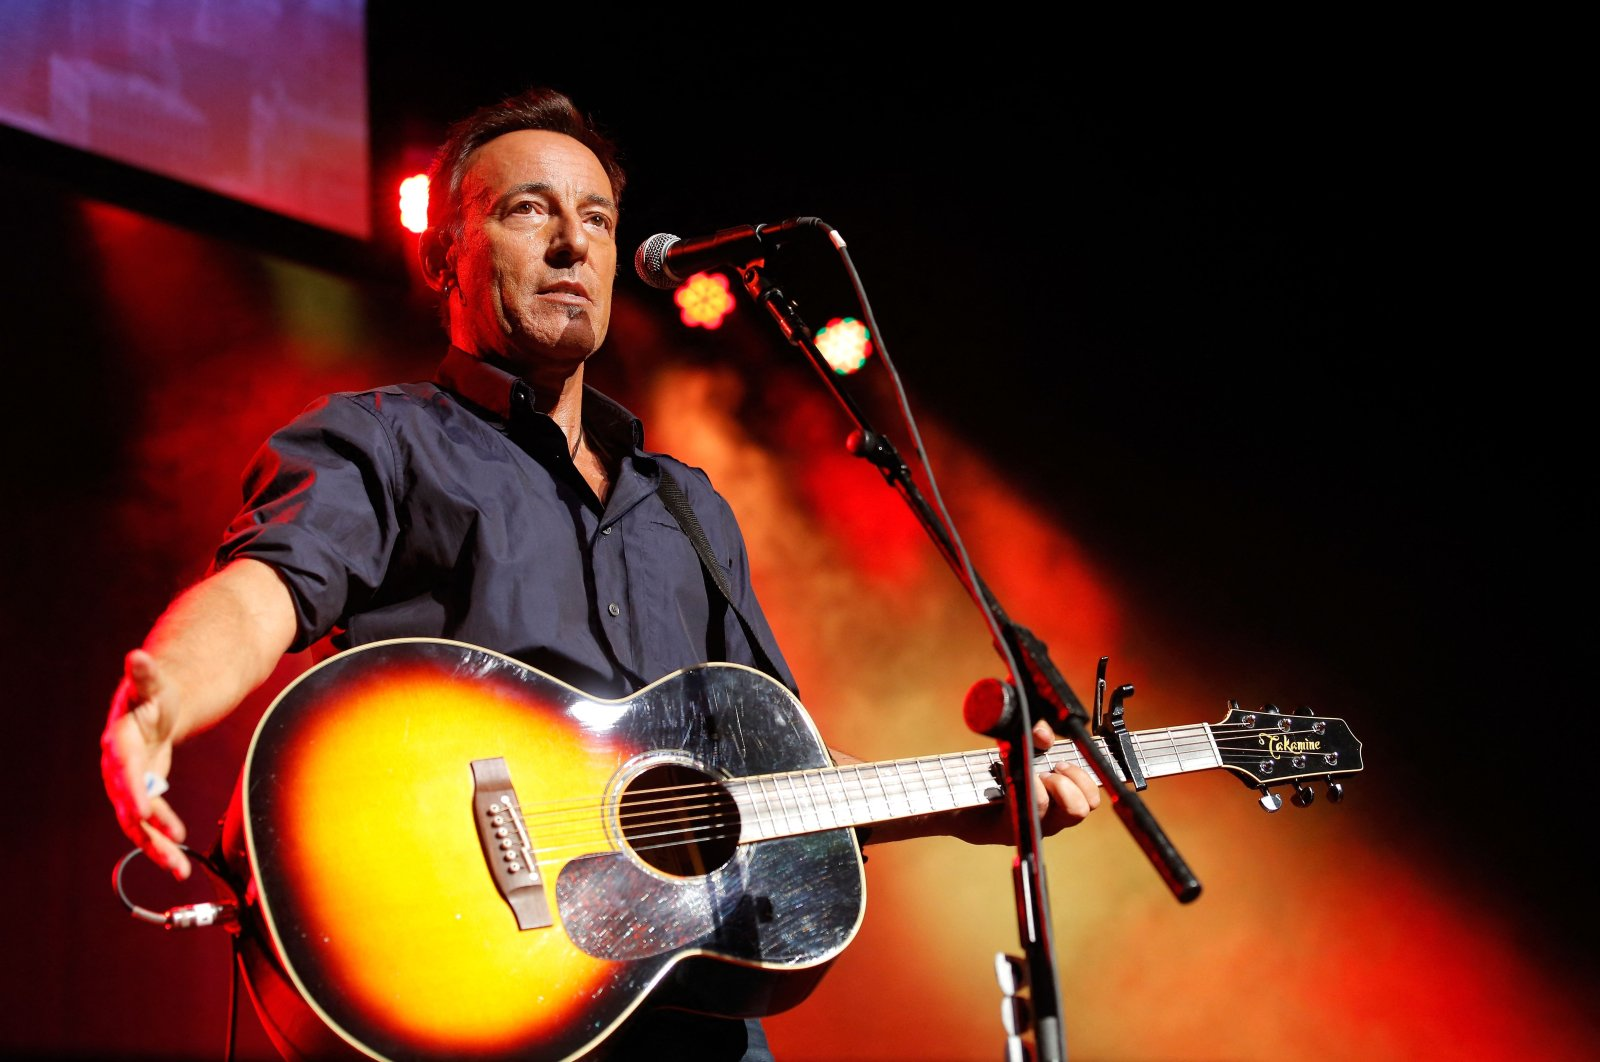 """Rock star Bruce Springsteen performs at the 7th annual """"Stand Up For Heroes"""" event at Madison Square Garden in New York City, U.S., Nov. 6, 2013. (AFP Photo)"""